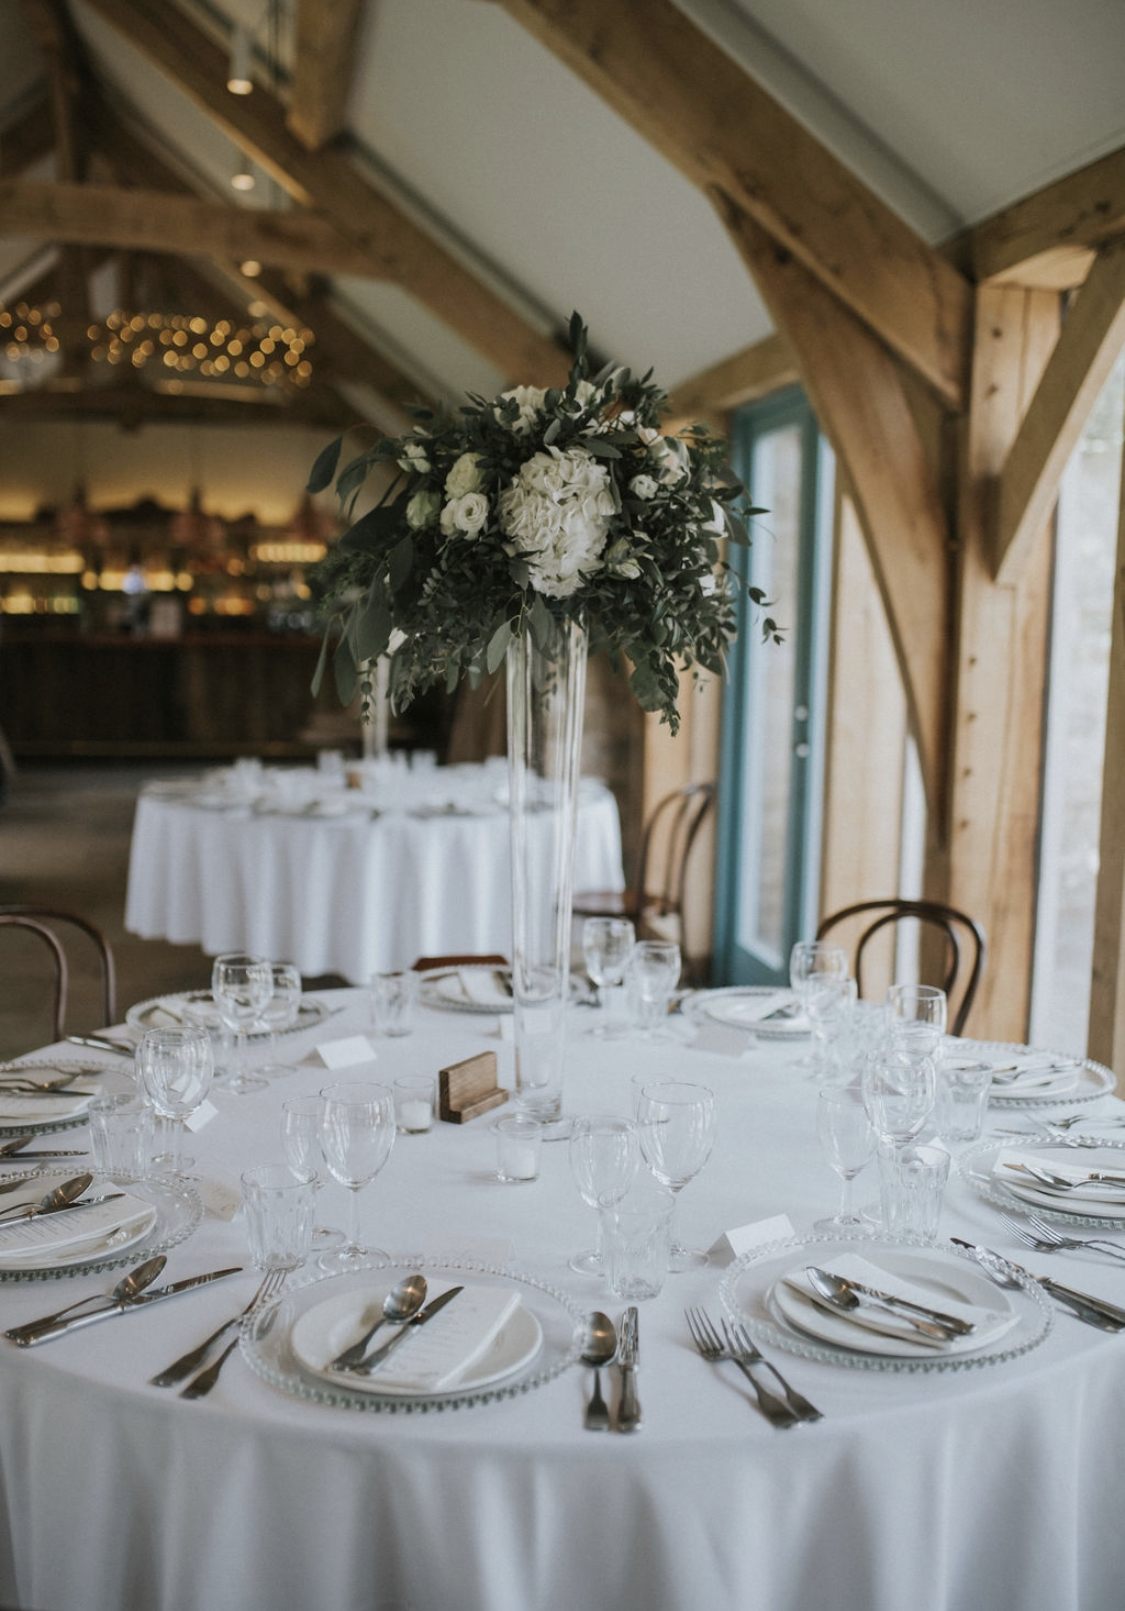 A floral wedding centrepiece at Healey Barn in Northumberland